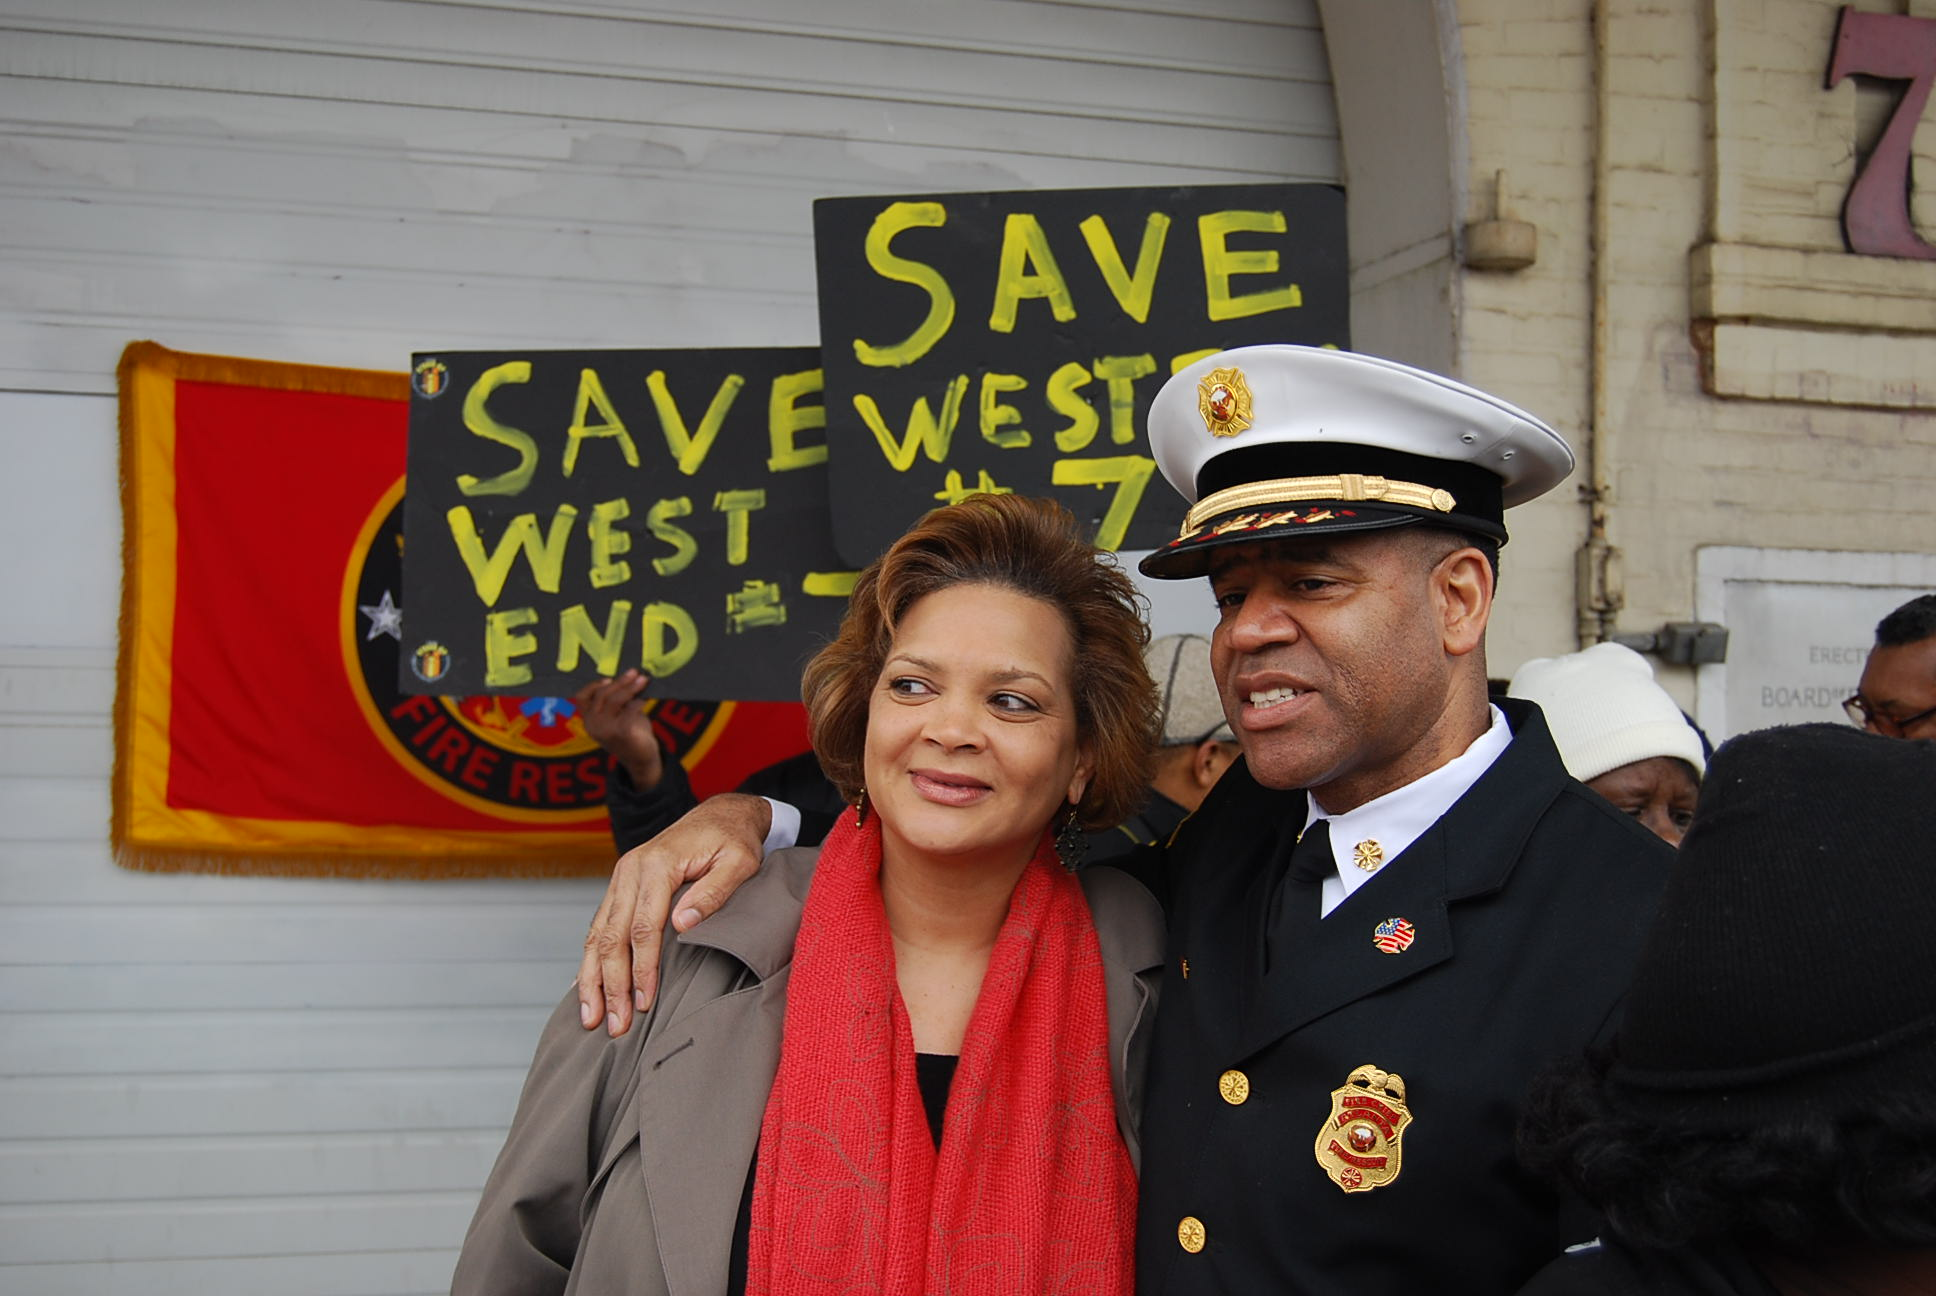 SAVE FIRE STATION #7